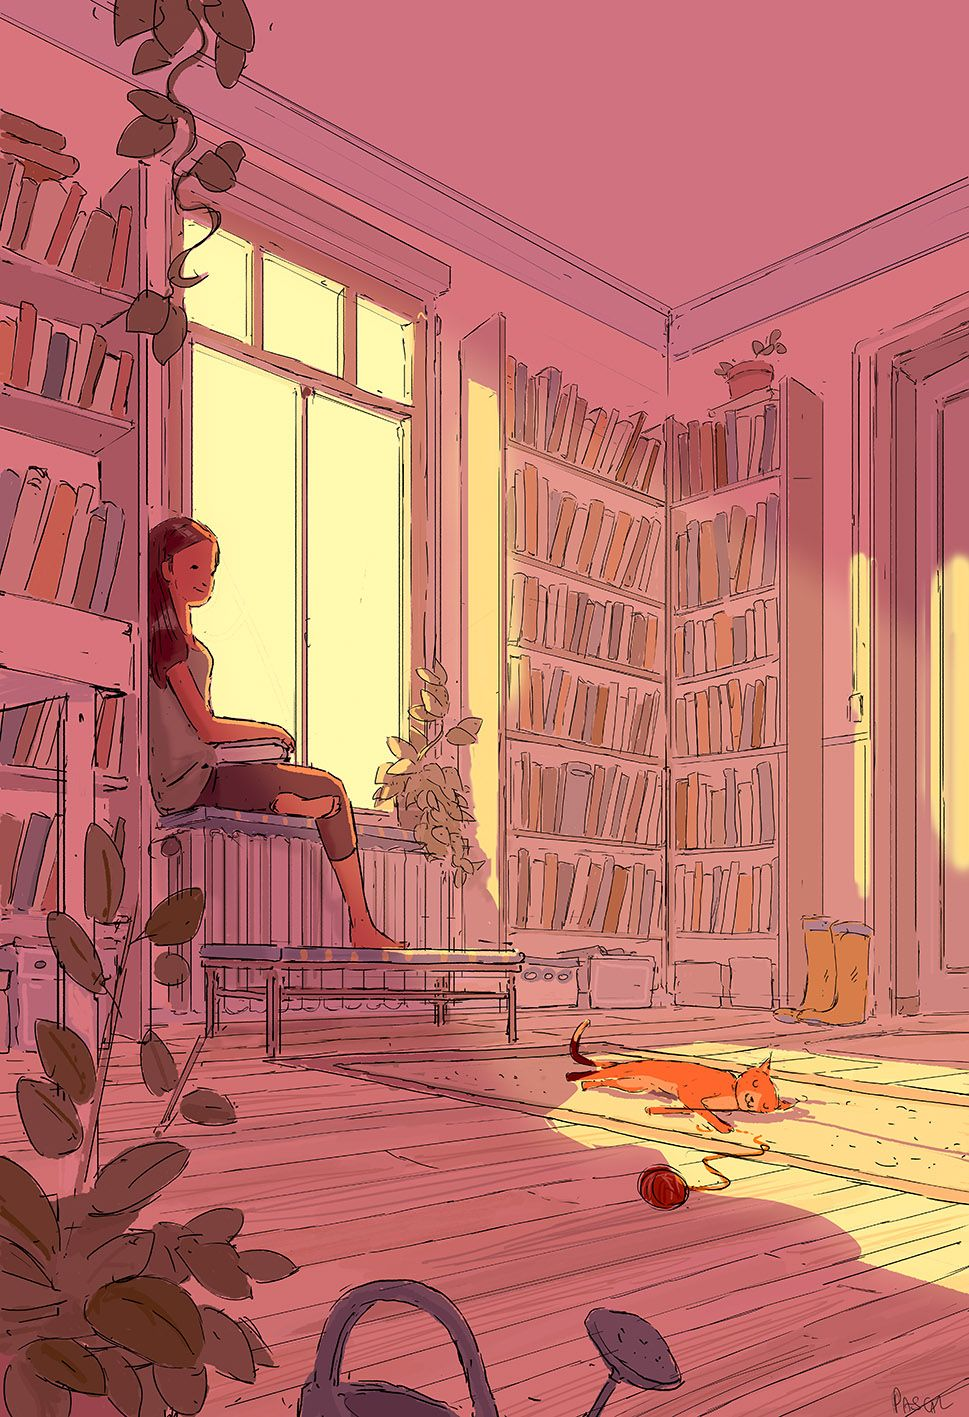 Another Good Spot Pascalcampion Art Beautiful Art Amazing Art